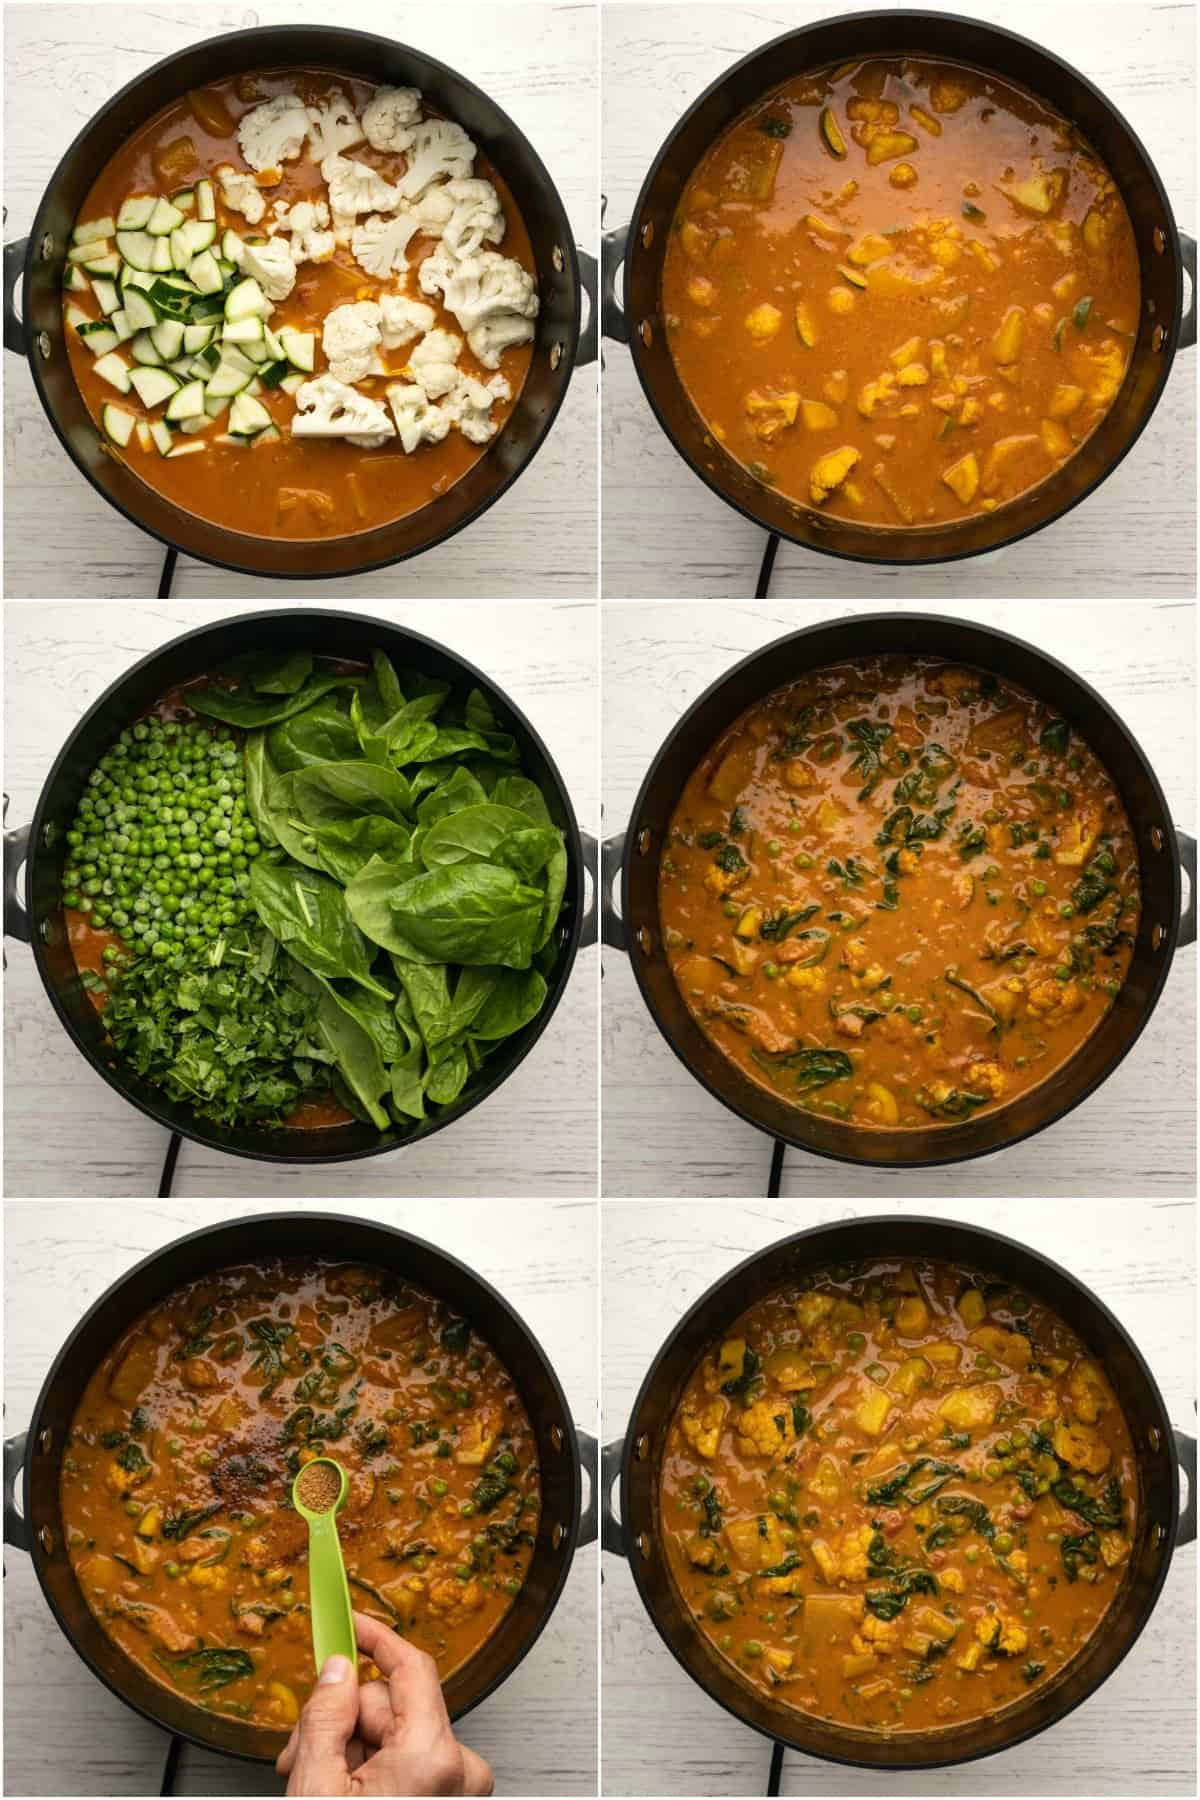 Step by step process photo collage of making a veg curry.